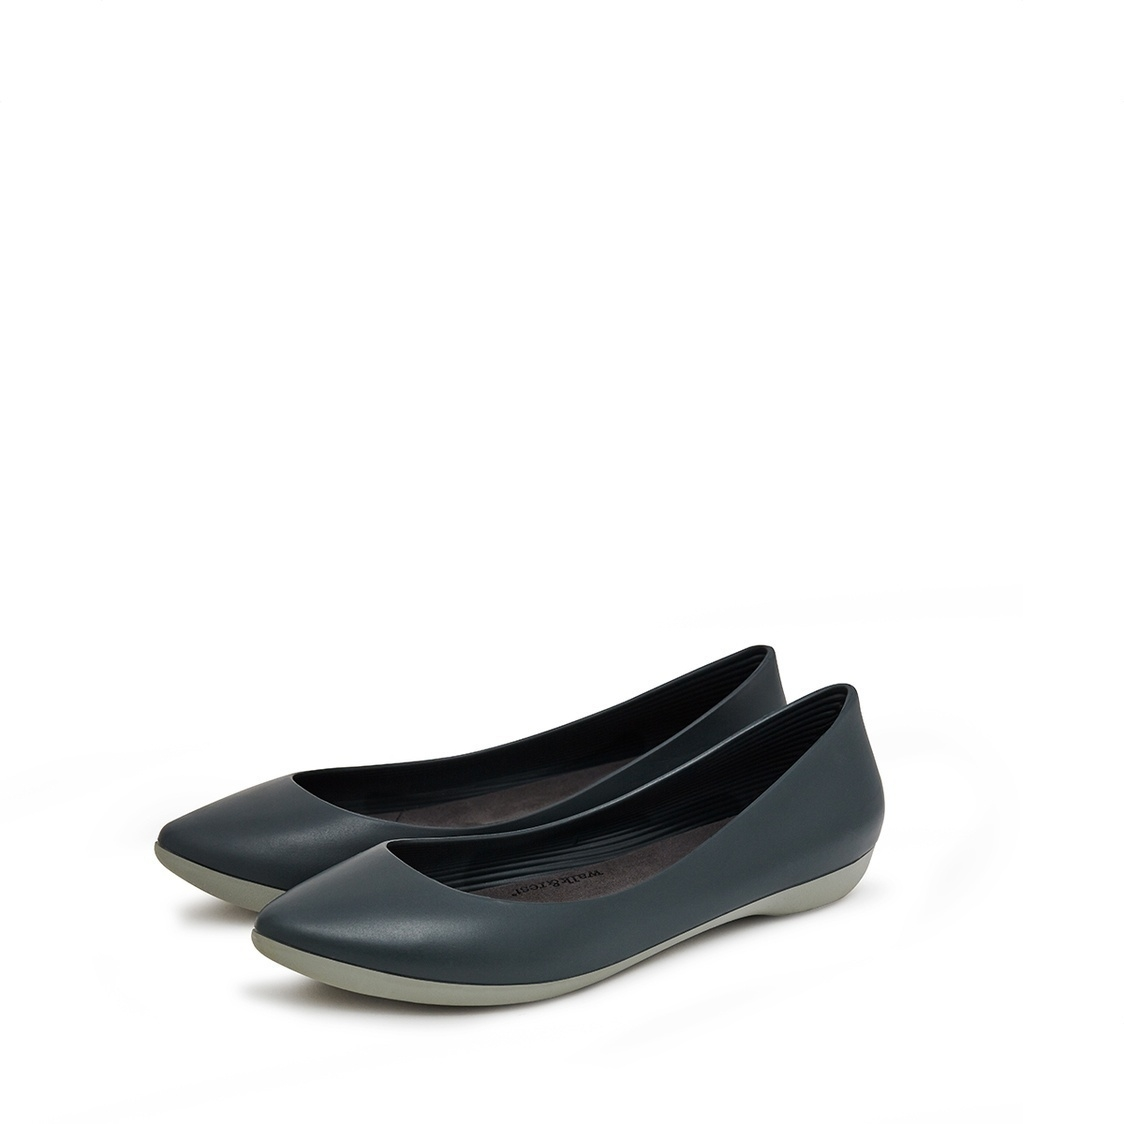 F2 Flat-Pointed Heel height 2cm Teal Green